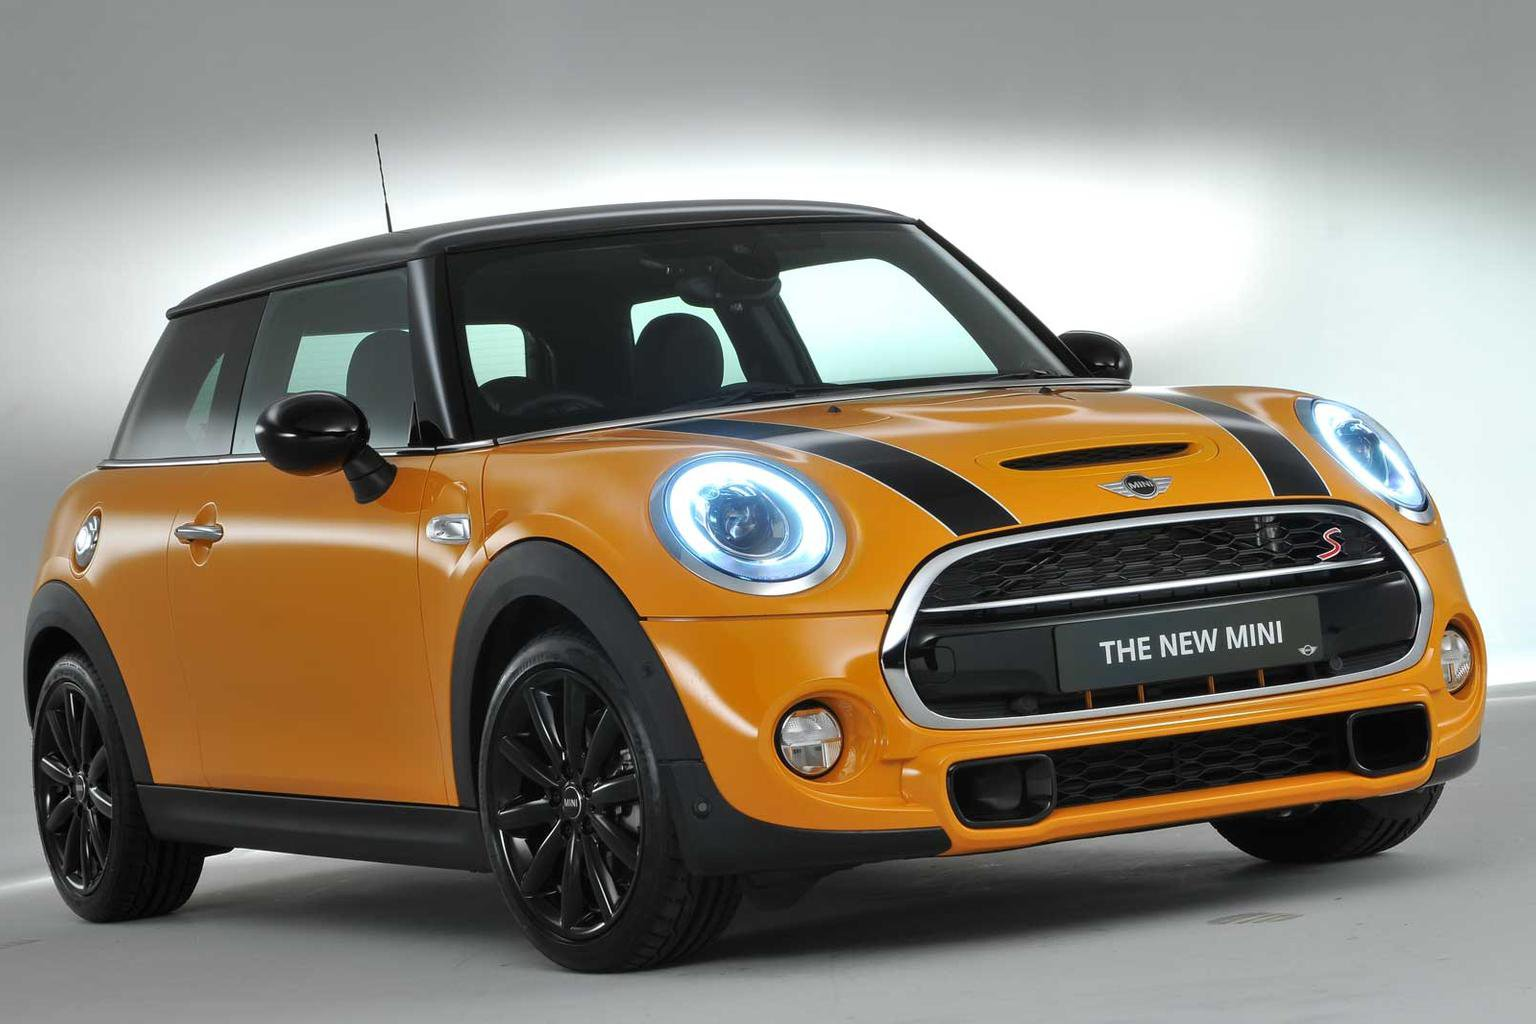 New 2014 Mini to get even more personalised